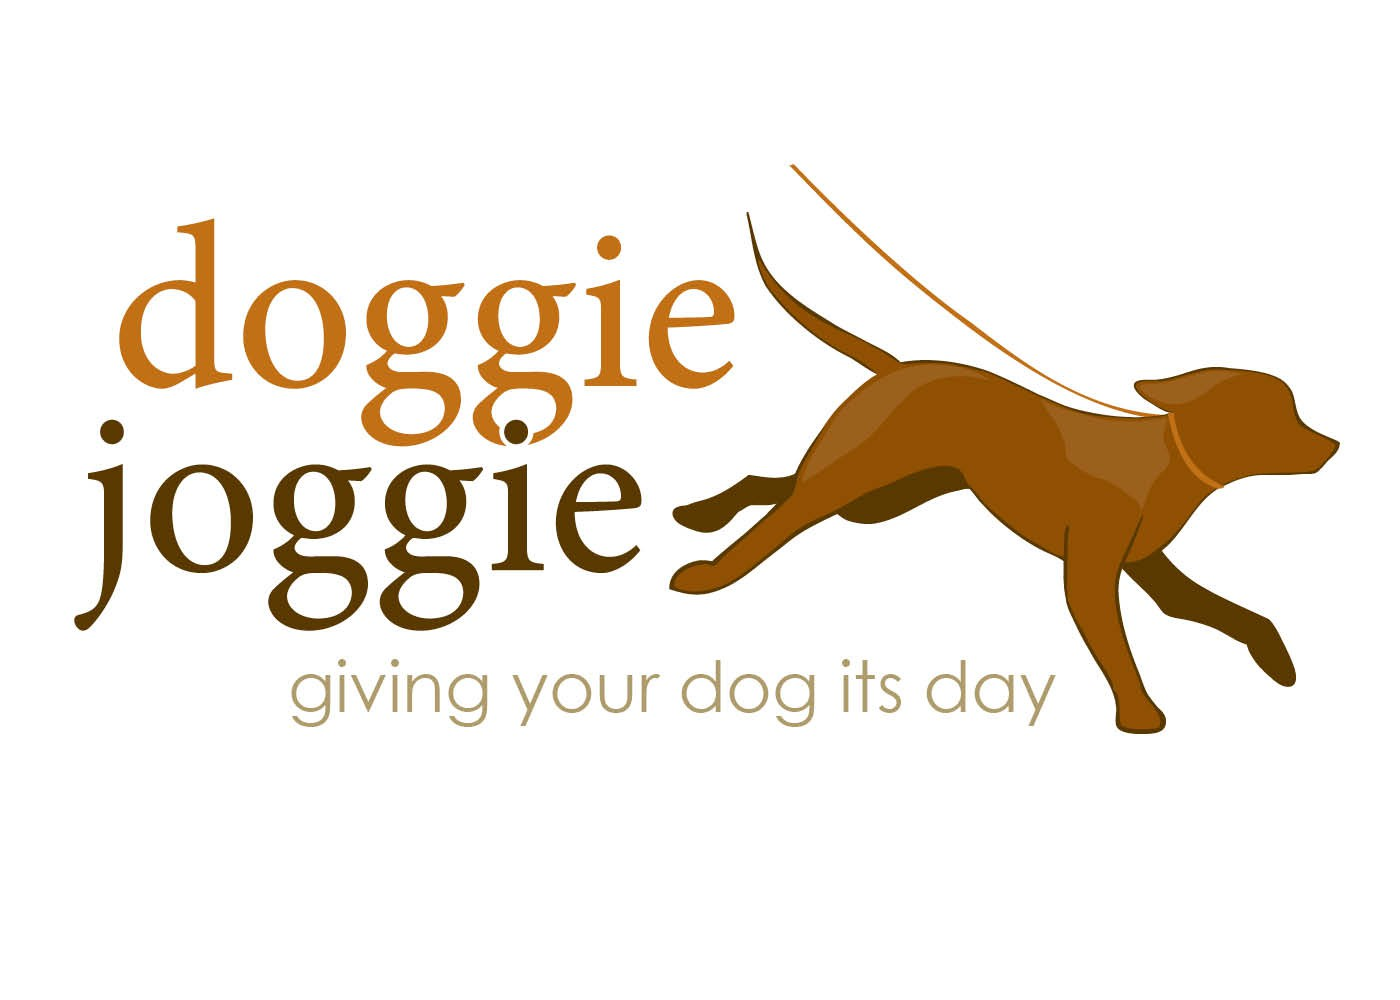 doggie joggie needs a new logo